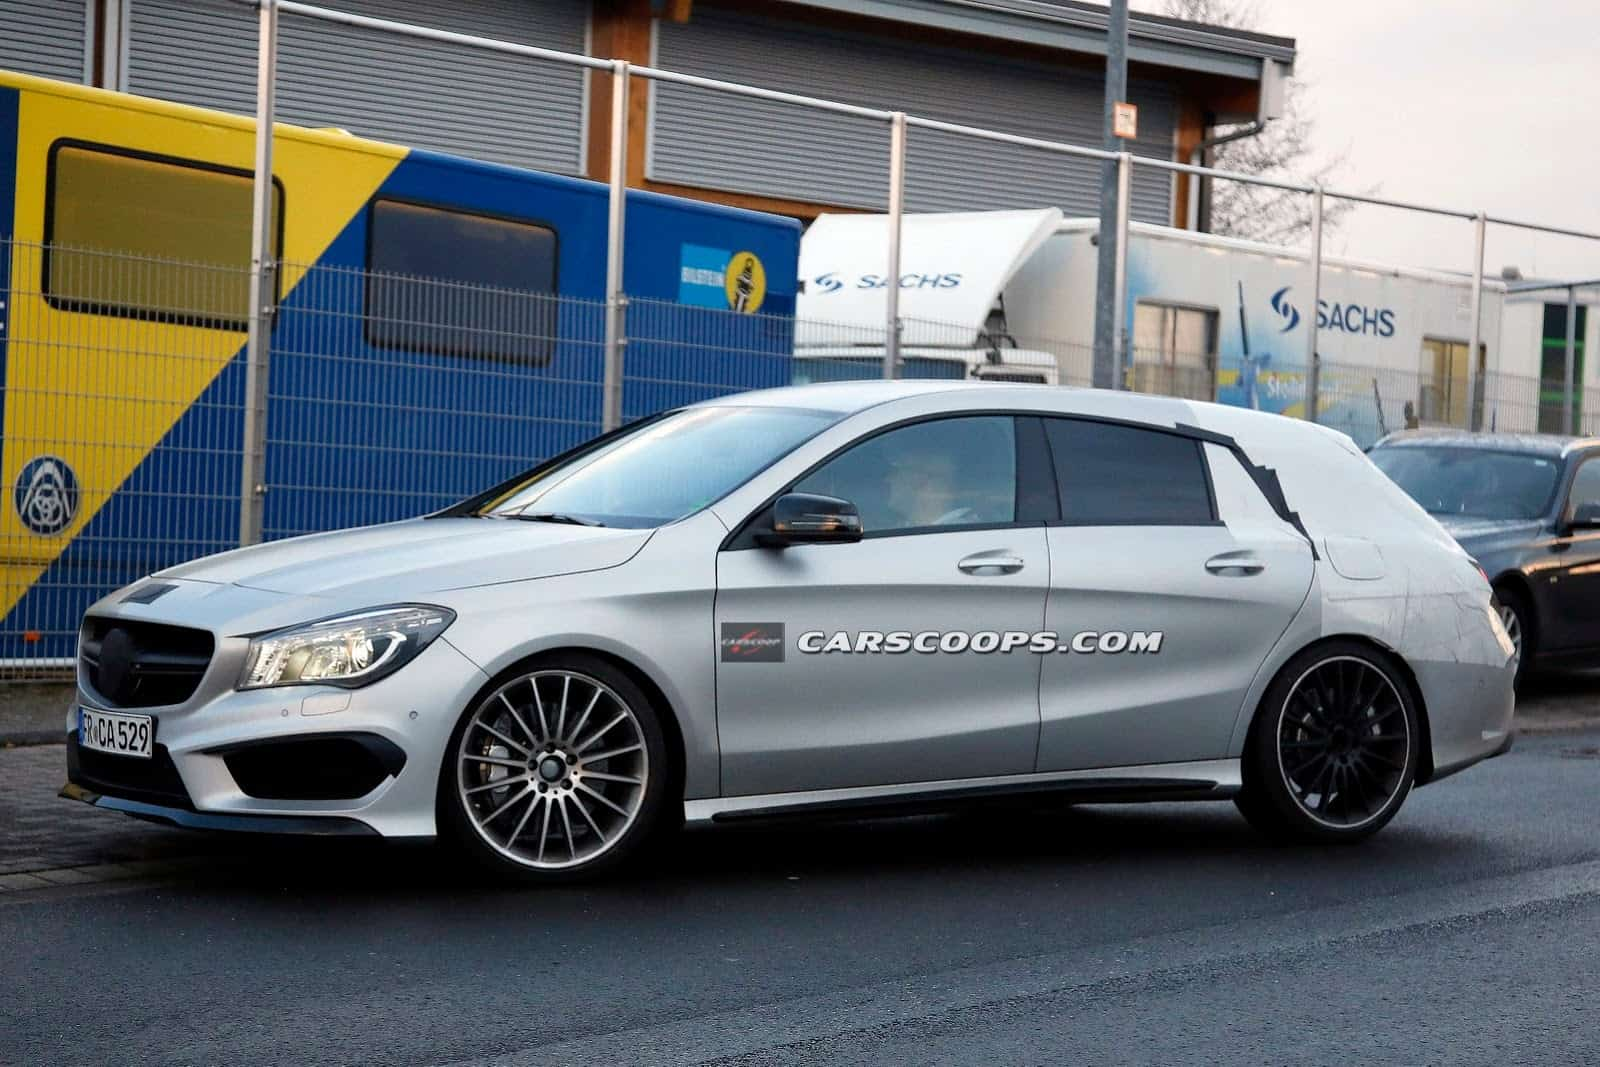 Spyshots : Mercedes CLA 45 AMG Shooting Brake